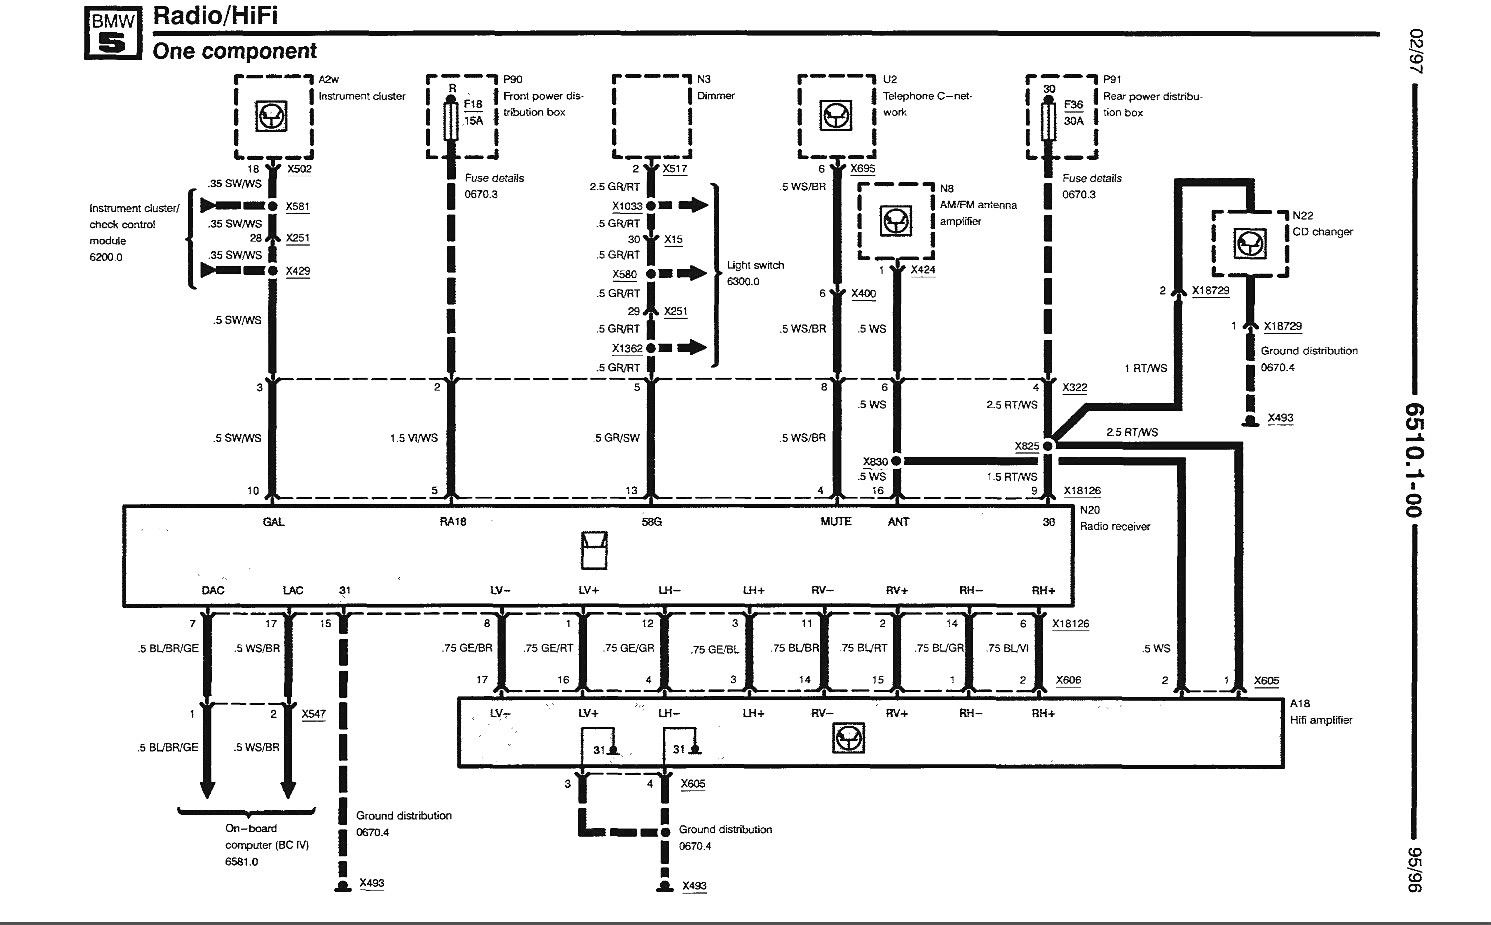 E39 Wiring Diagram For Dsp Amp Free Download Wiring